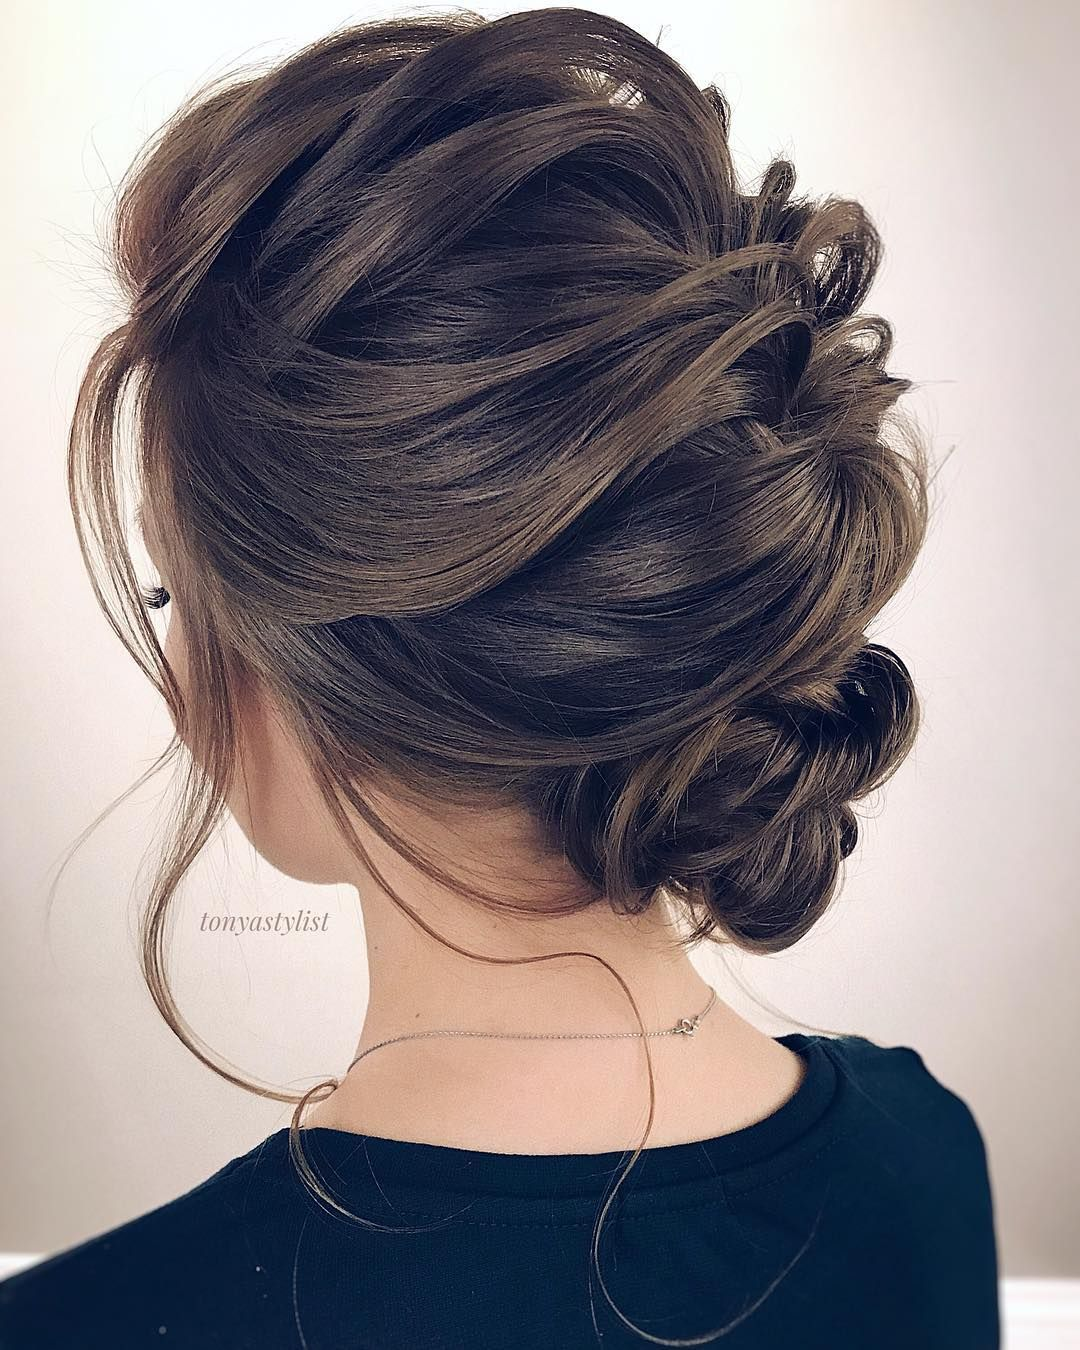 Best Updo Hairstyles For Medium Length Hair Prom And Homecoming Hair Style Idea Braided Hairstyles Updo Medium Length Hair Styles Updos For Medium Length Hair